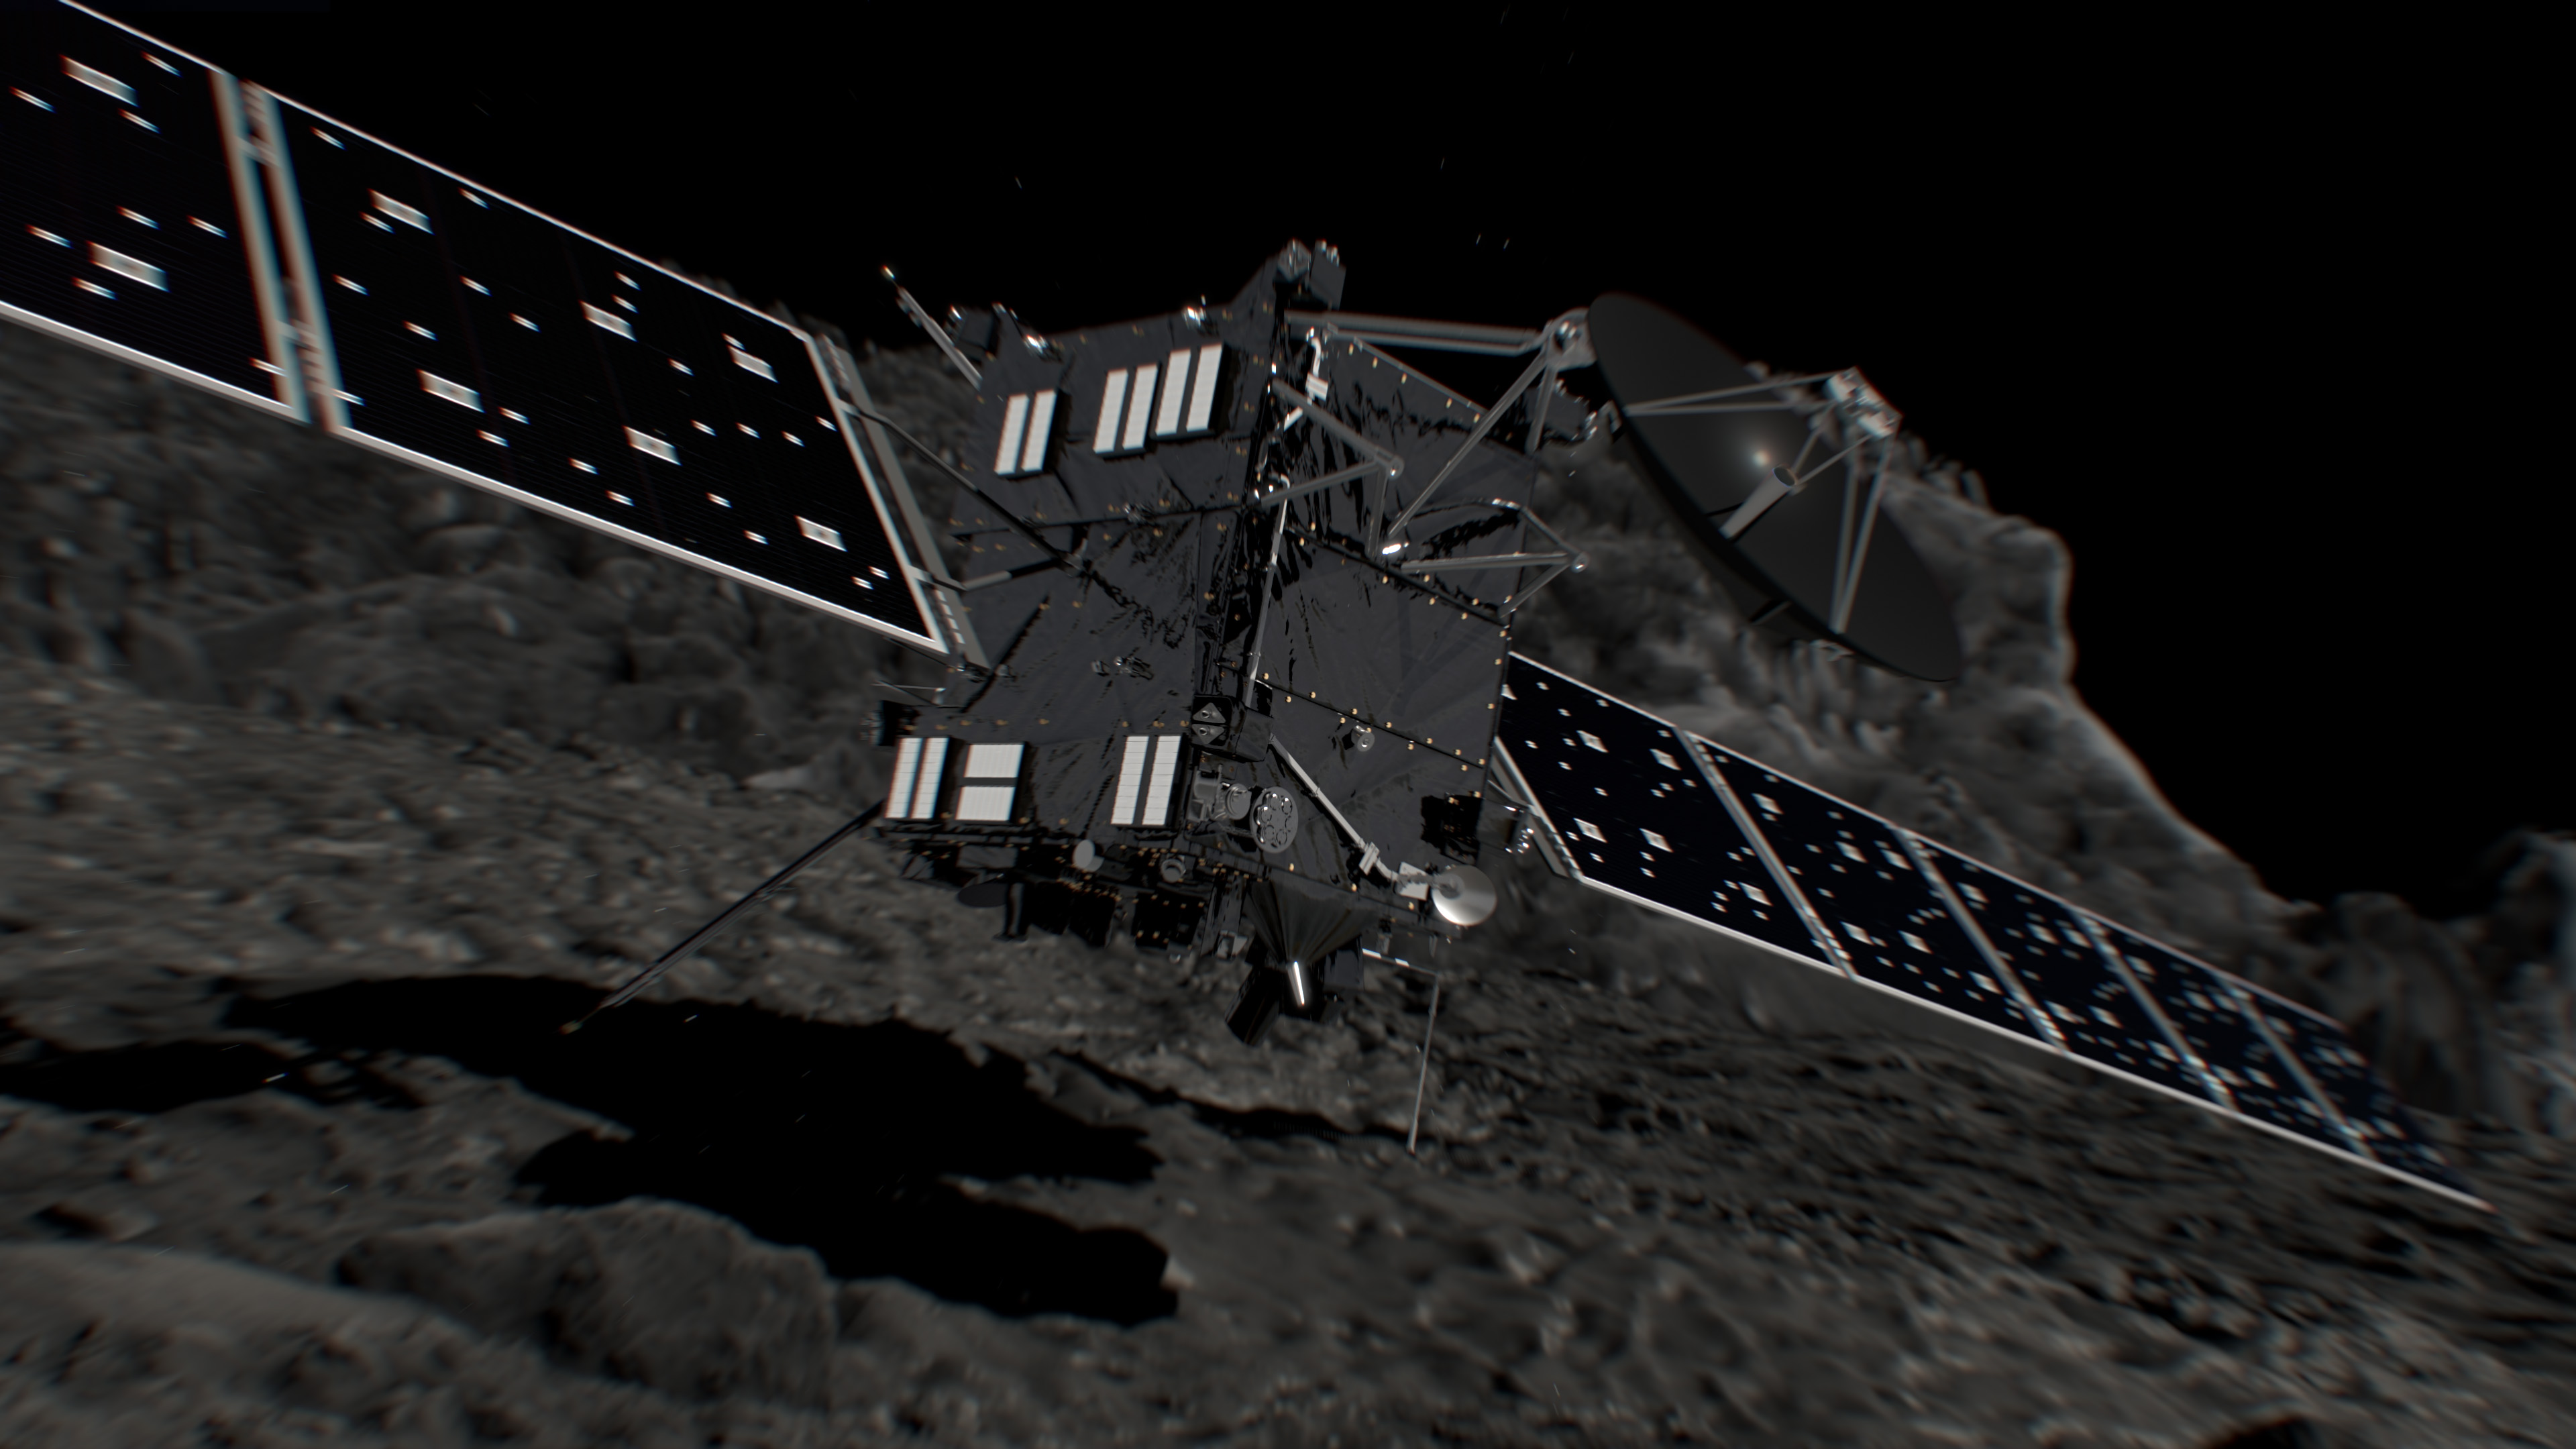 Goodbye, Rosetta! Spacecraft Crash-Lands on Comet in Epic Mission Finale